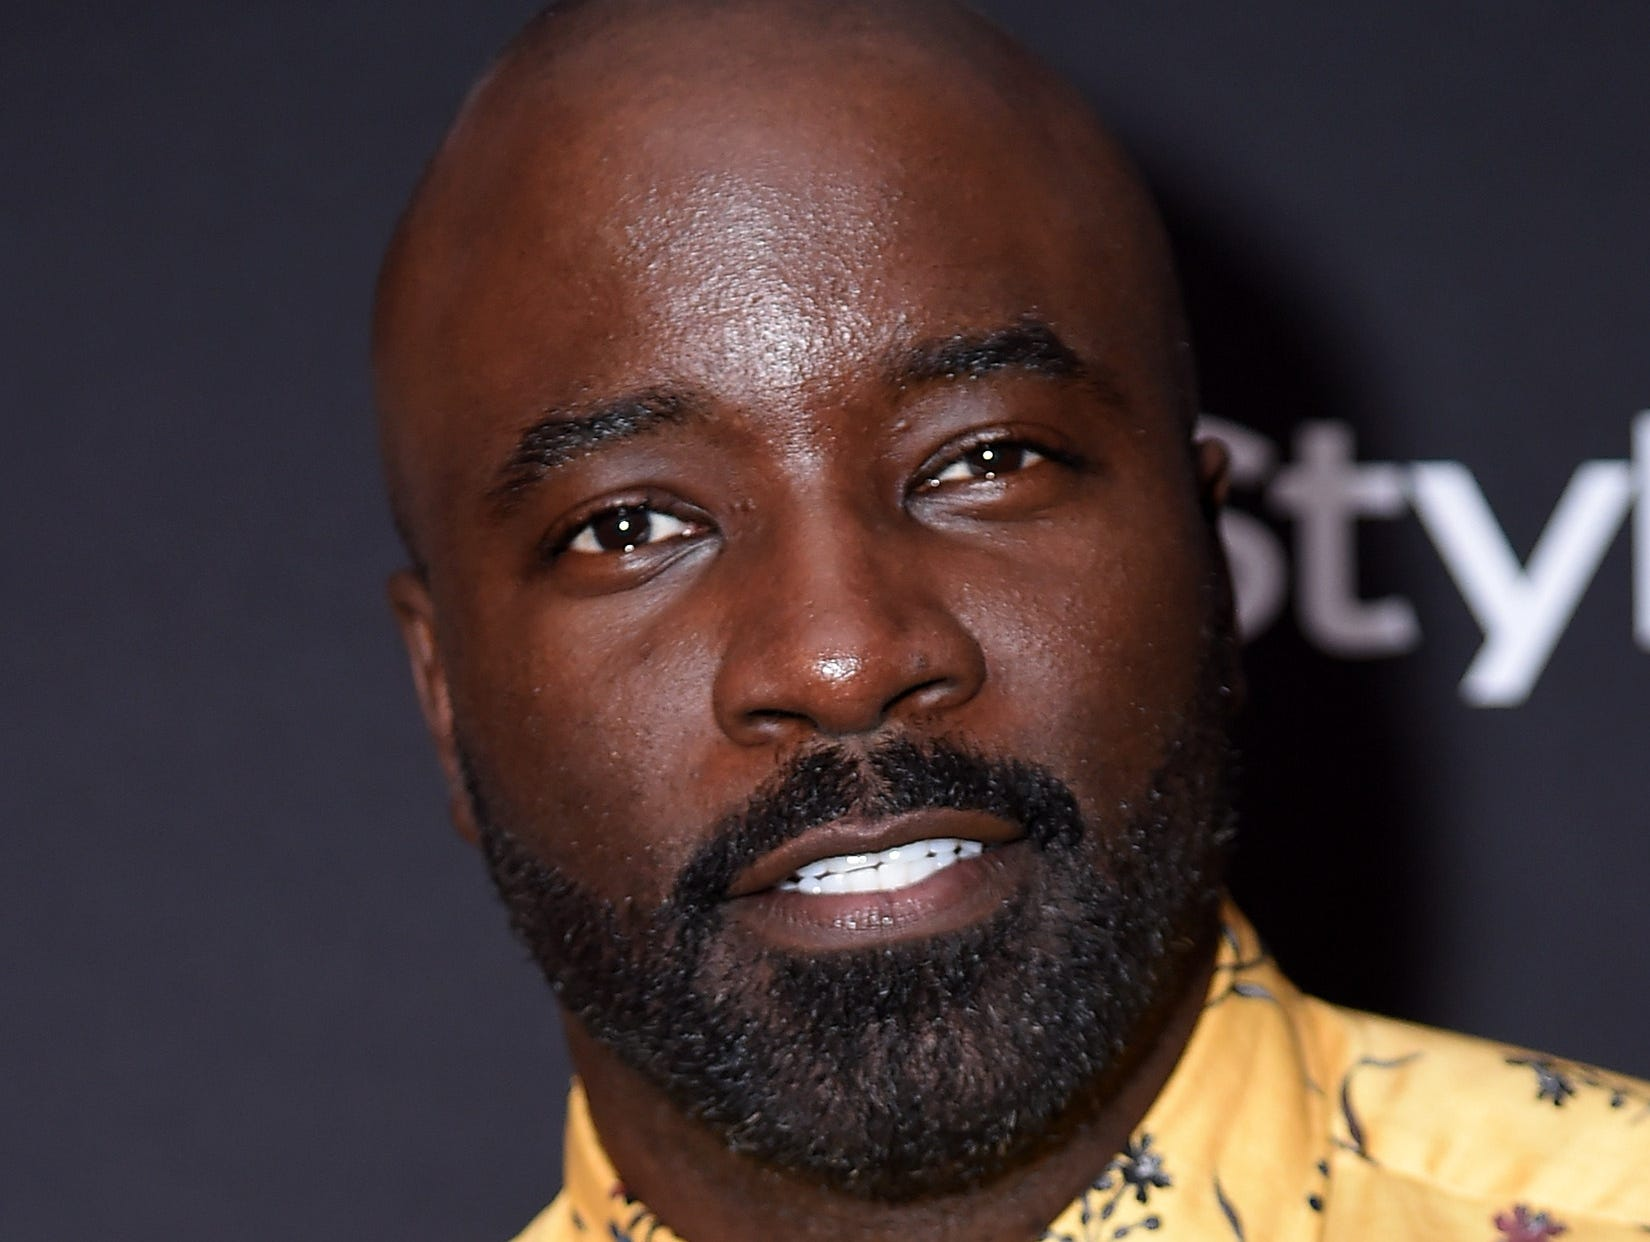 TORONTO, ON - SEPTEMBER 08:  Mike Colter attends The Hollywood Foreign Press Association and InStyle Party during 2018 Toronto International Film Festival at Four Seasons Hotel on September 8, 2018 in Toronto, Canada.  (Photo by Michael Loccisano/Getty Images,) ORG XMIT: 775218497 ORIG FILE ID: 1029584672